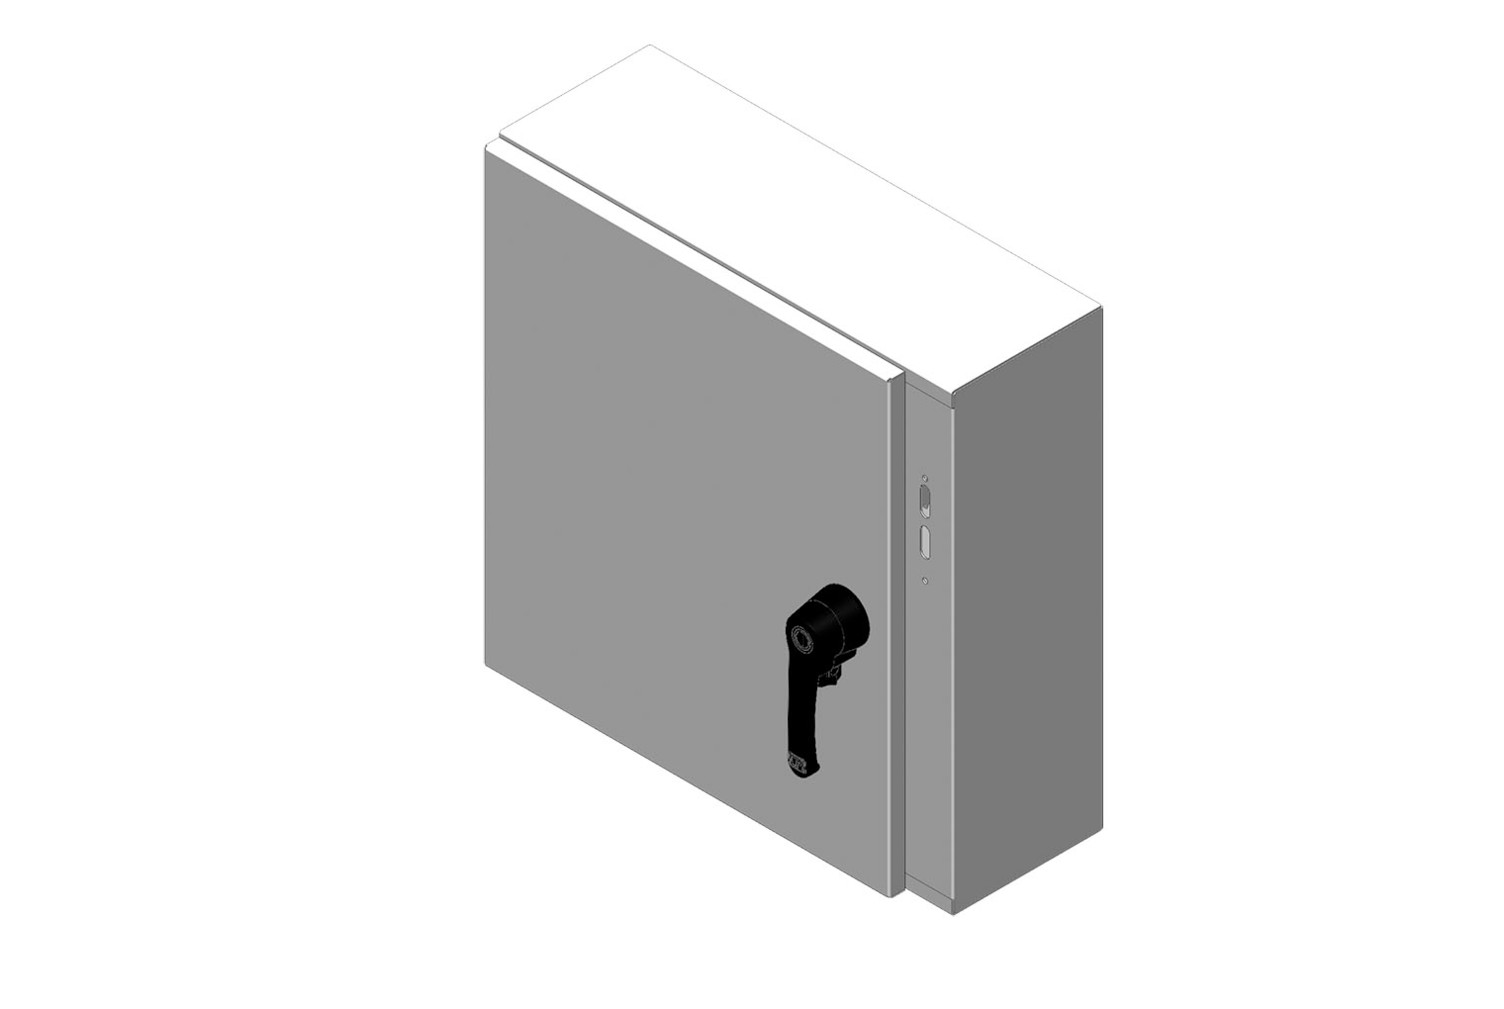 RMR Standard Wall-Mount Disconnect Enclosure, Type 4, with Solid Single Door Image